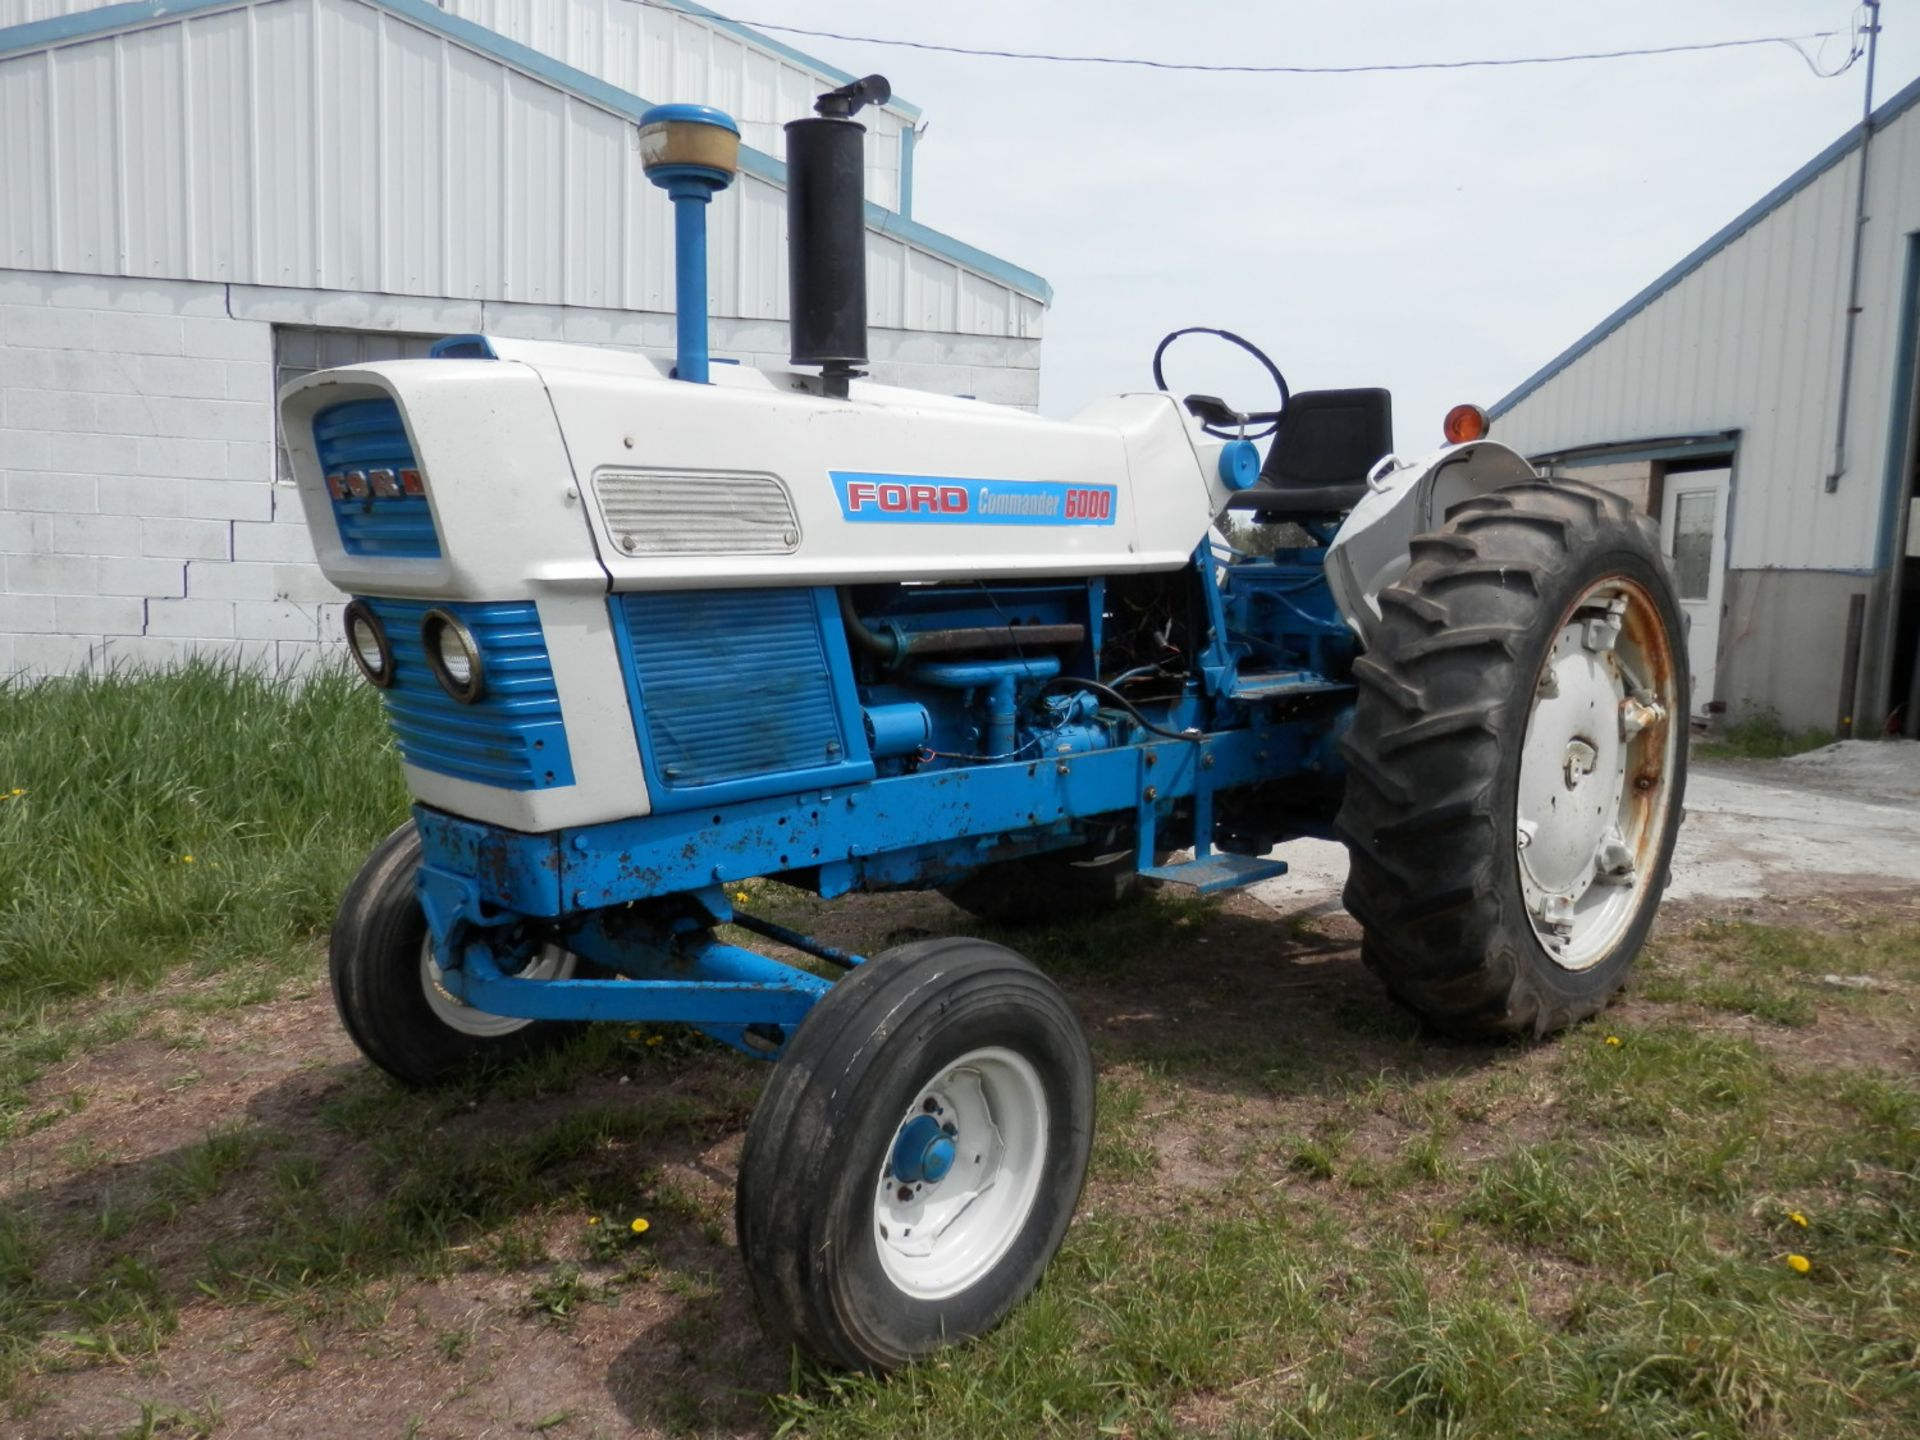 FORD 6000 COMMANDER DIESEL TRACTOR - Image 3 of 8